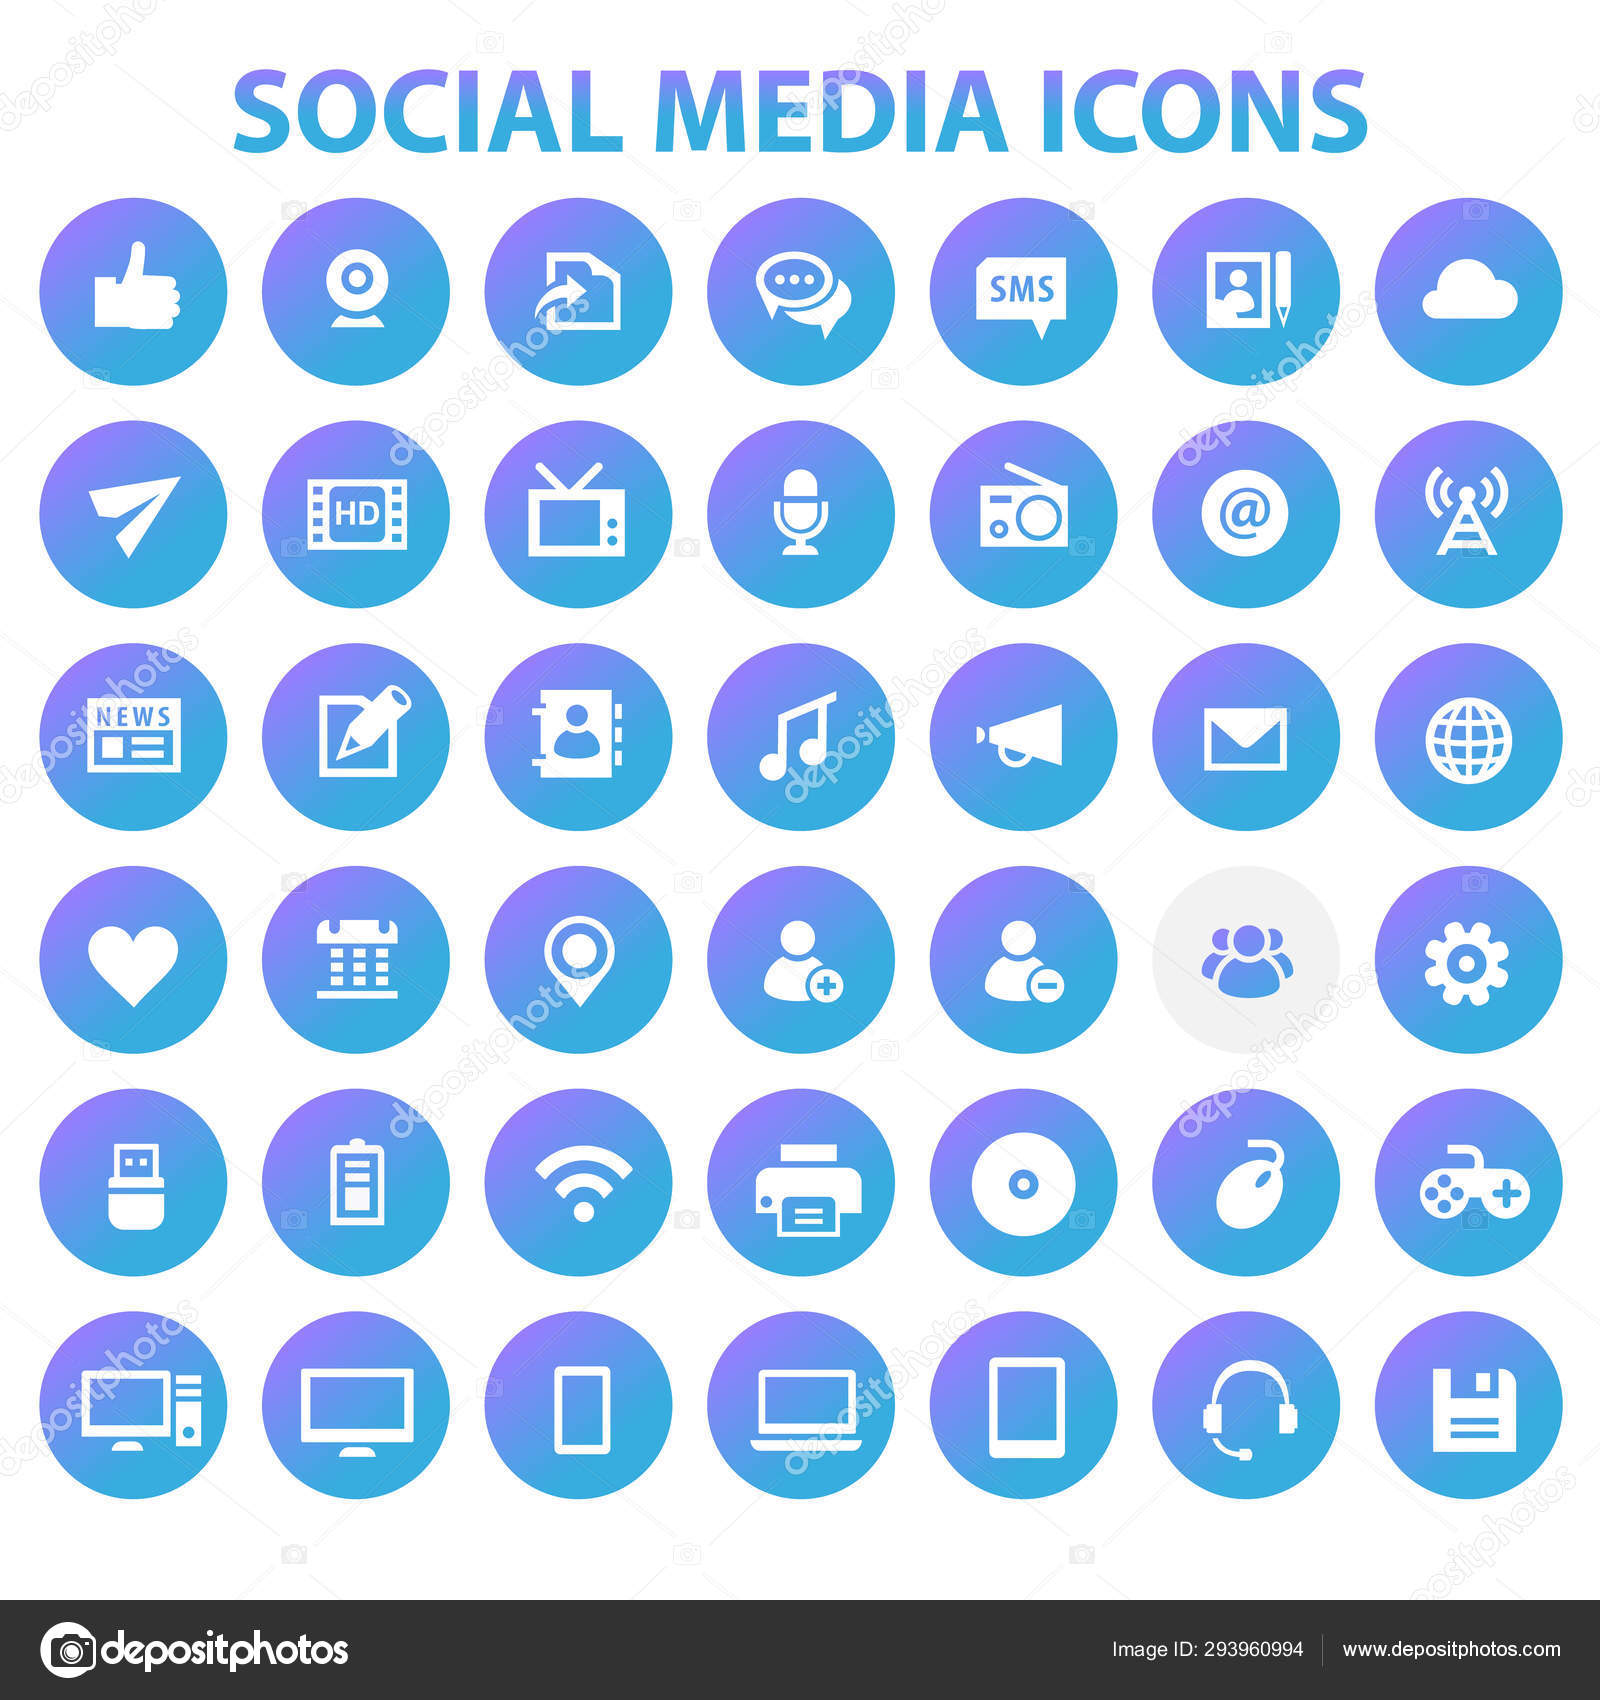 Big Social Media Icon Set Trendy Flat Icons Collection Stock Vector C Izabell 293960994